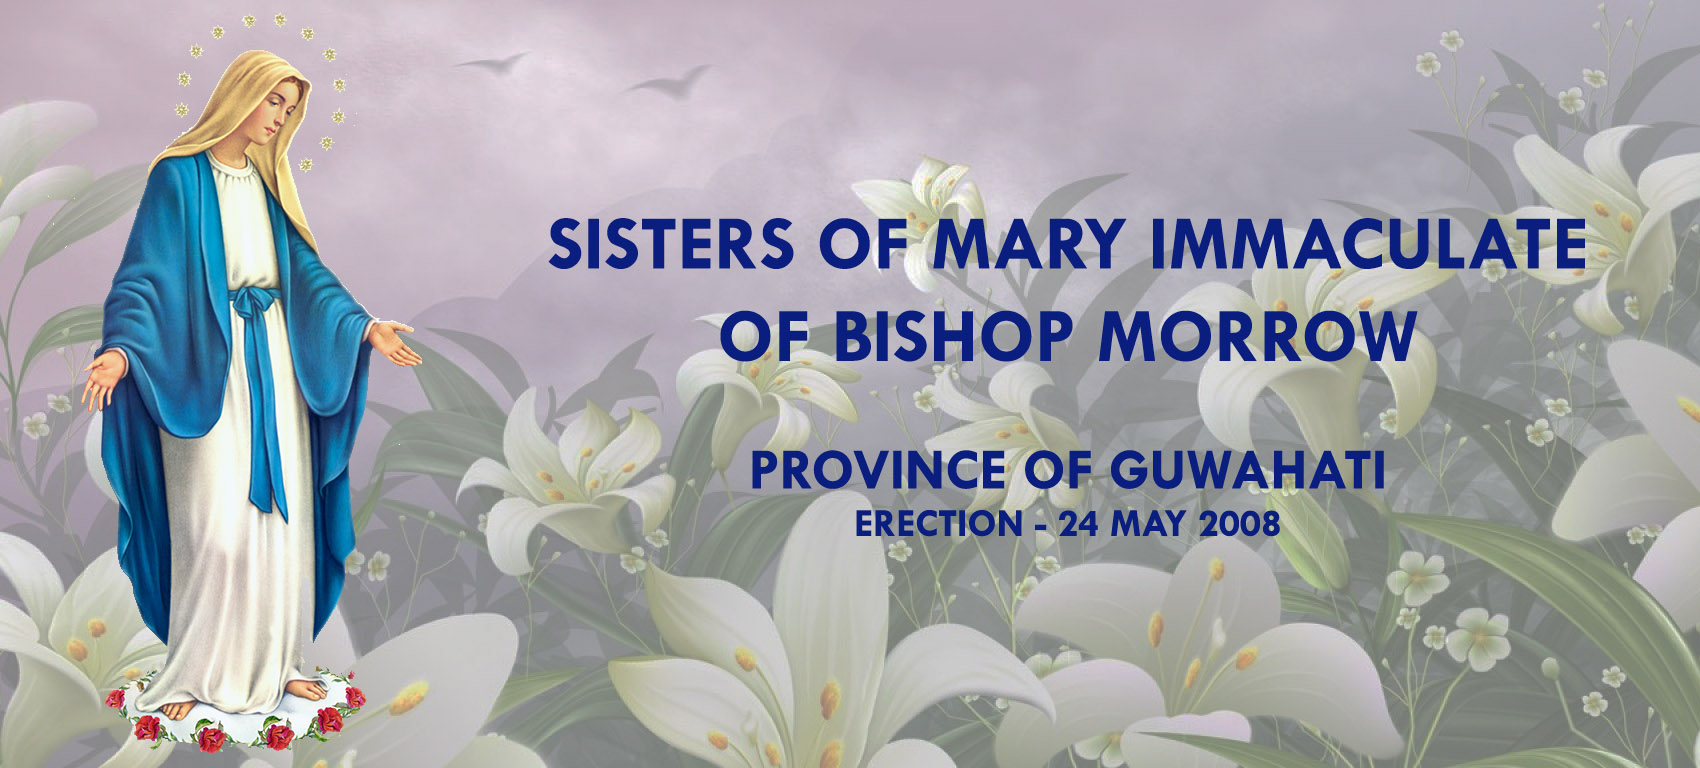 Welcome to Sisters of Mary Immaculate, Guwahati Province